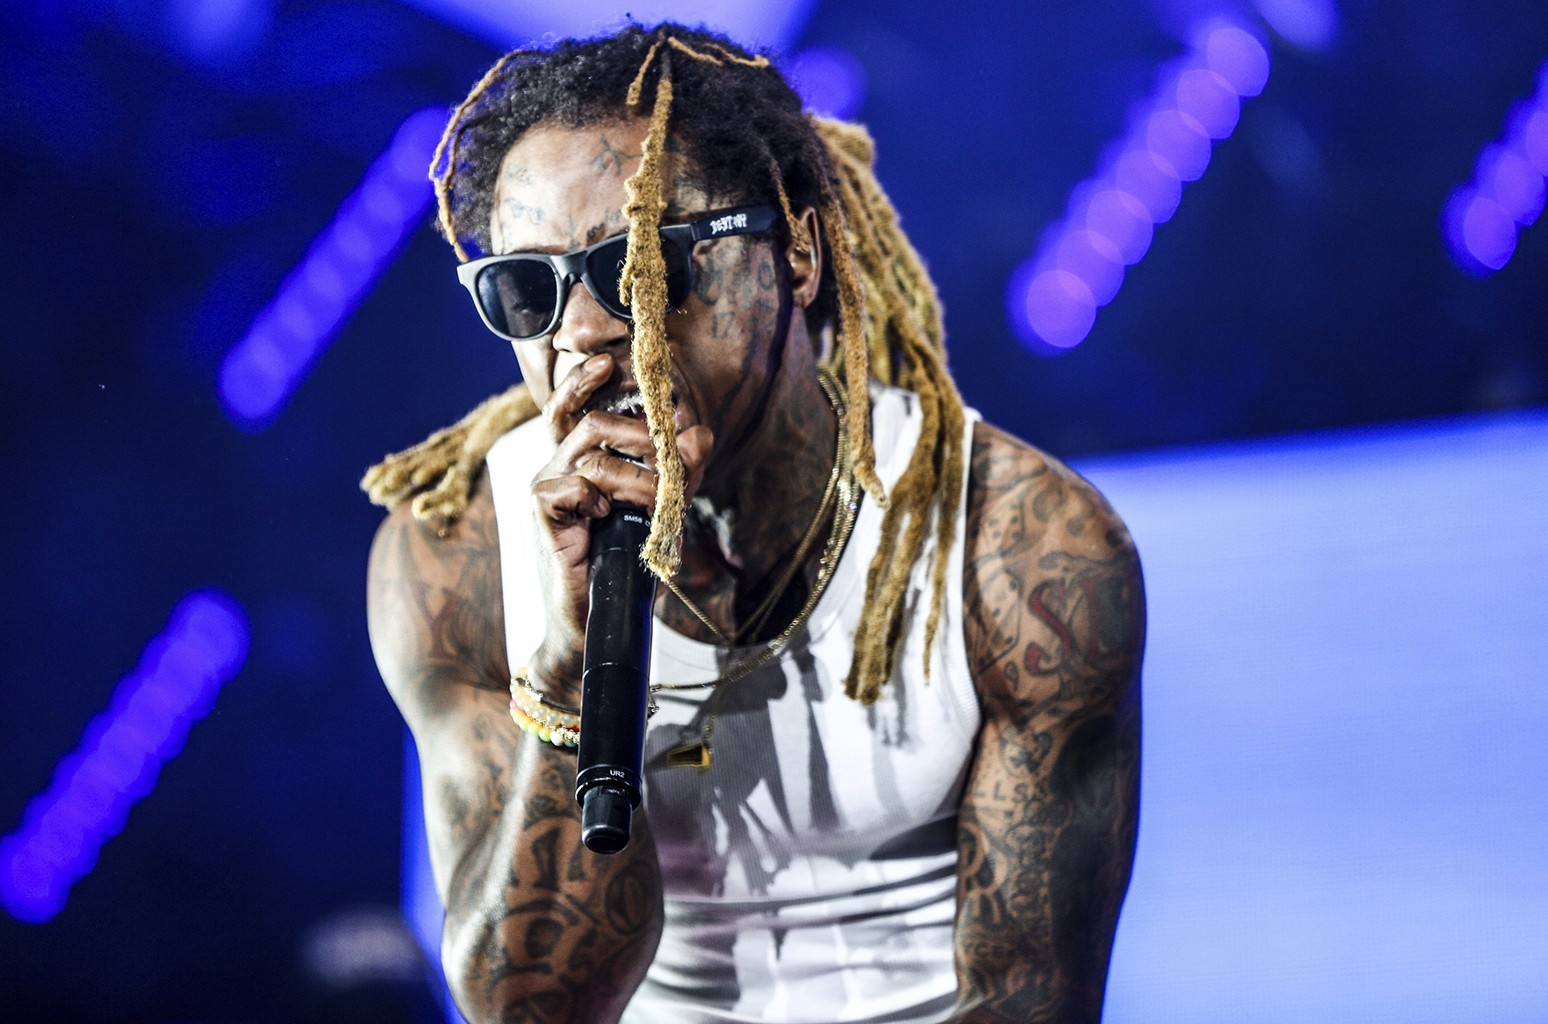 Lil Wayne performs at the 2016 BET Experience